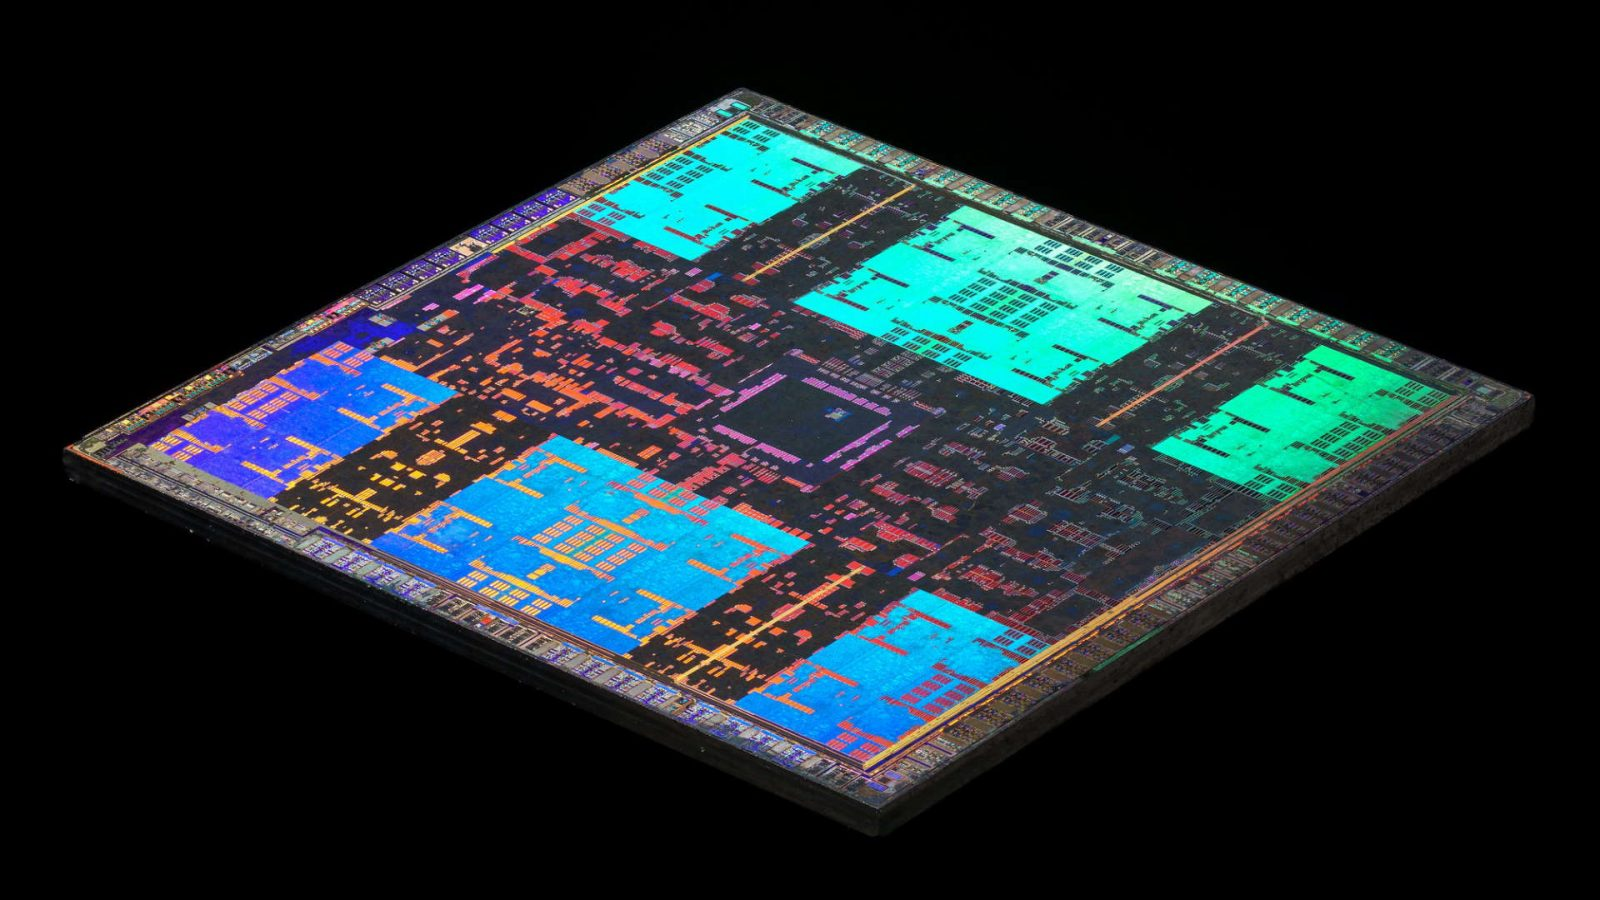 Next-gen 7nm Nvidia GPUs for data centres reportedly delayed